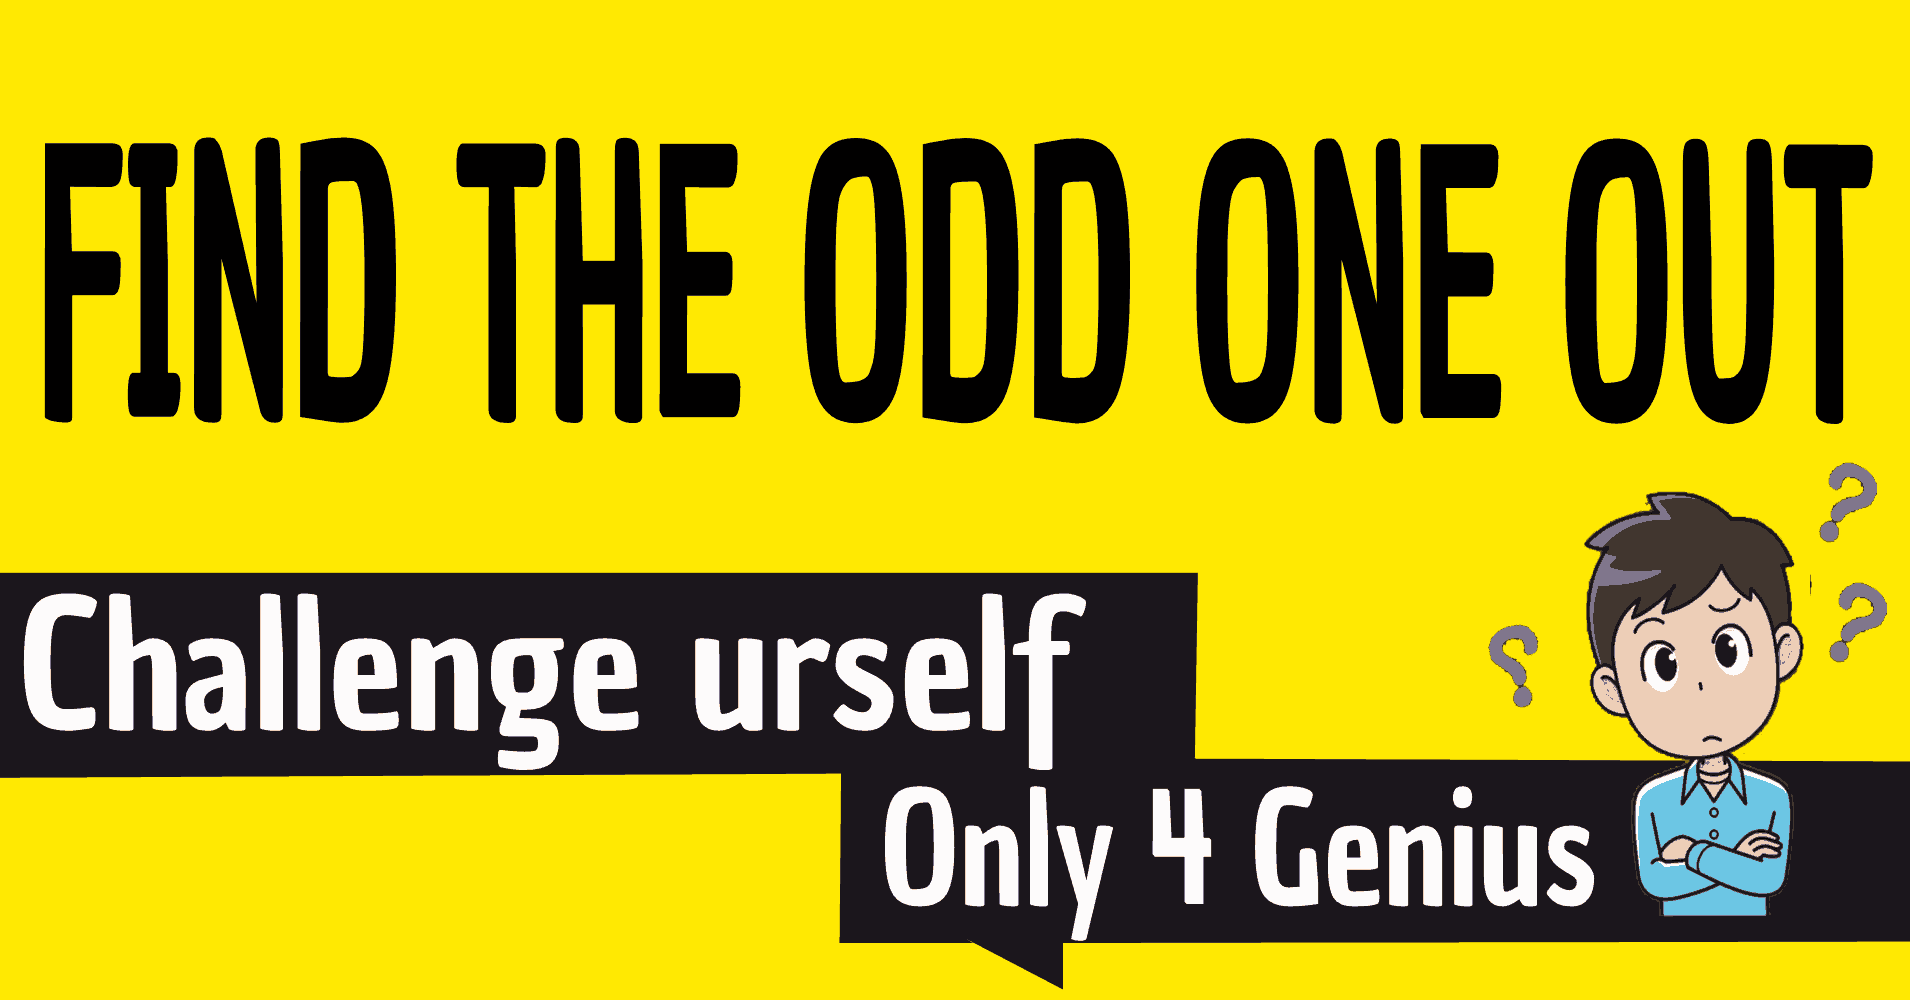 You Have An Extremely Sharp Brain If You Can Find The Odd One Out. Challenge Now!